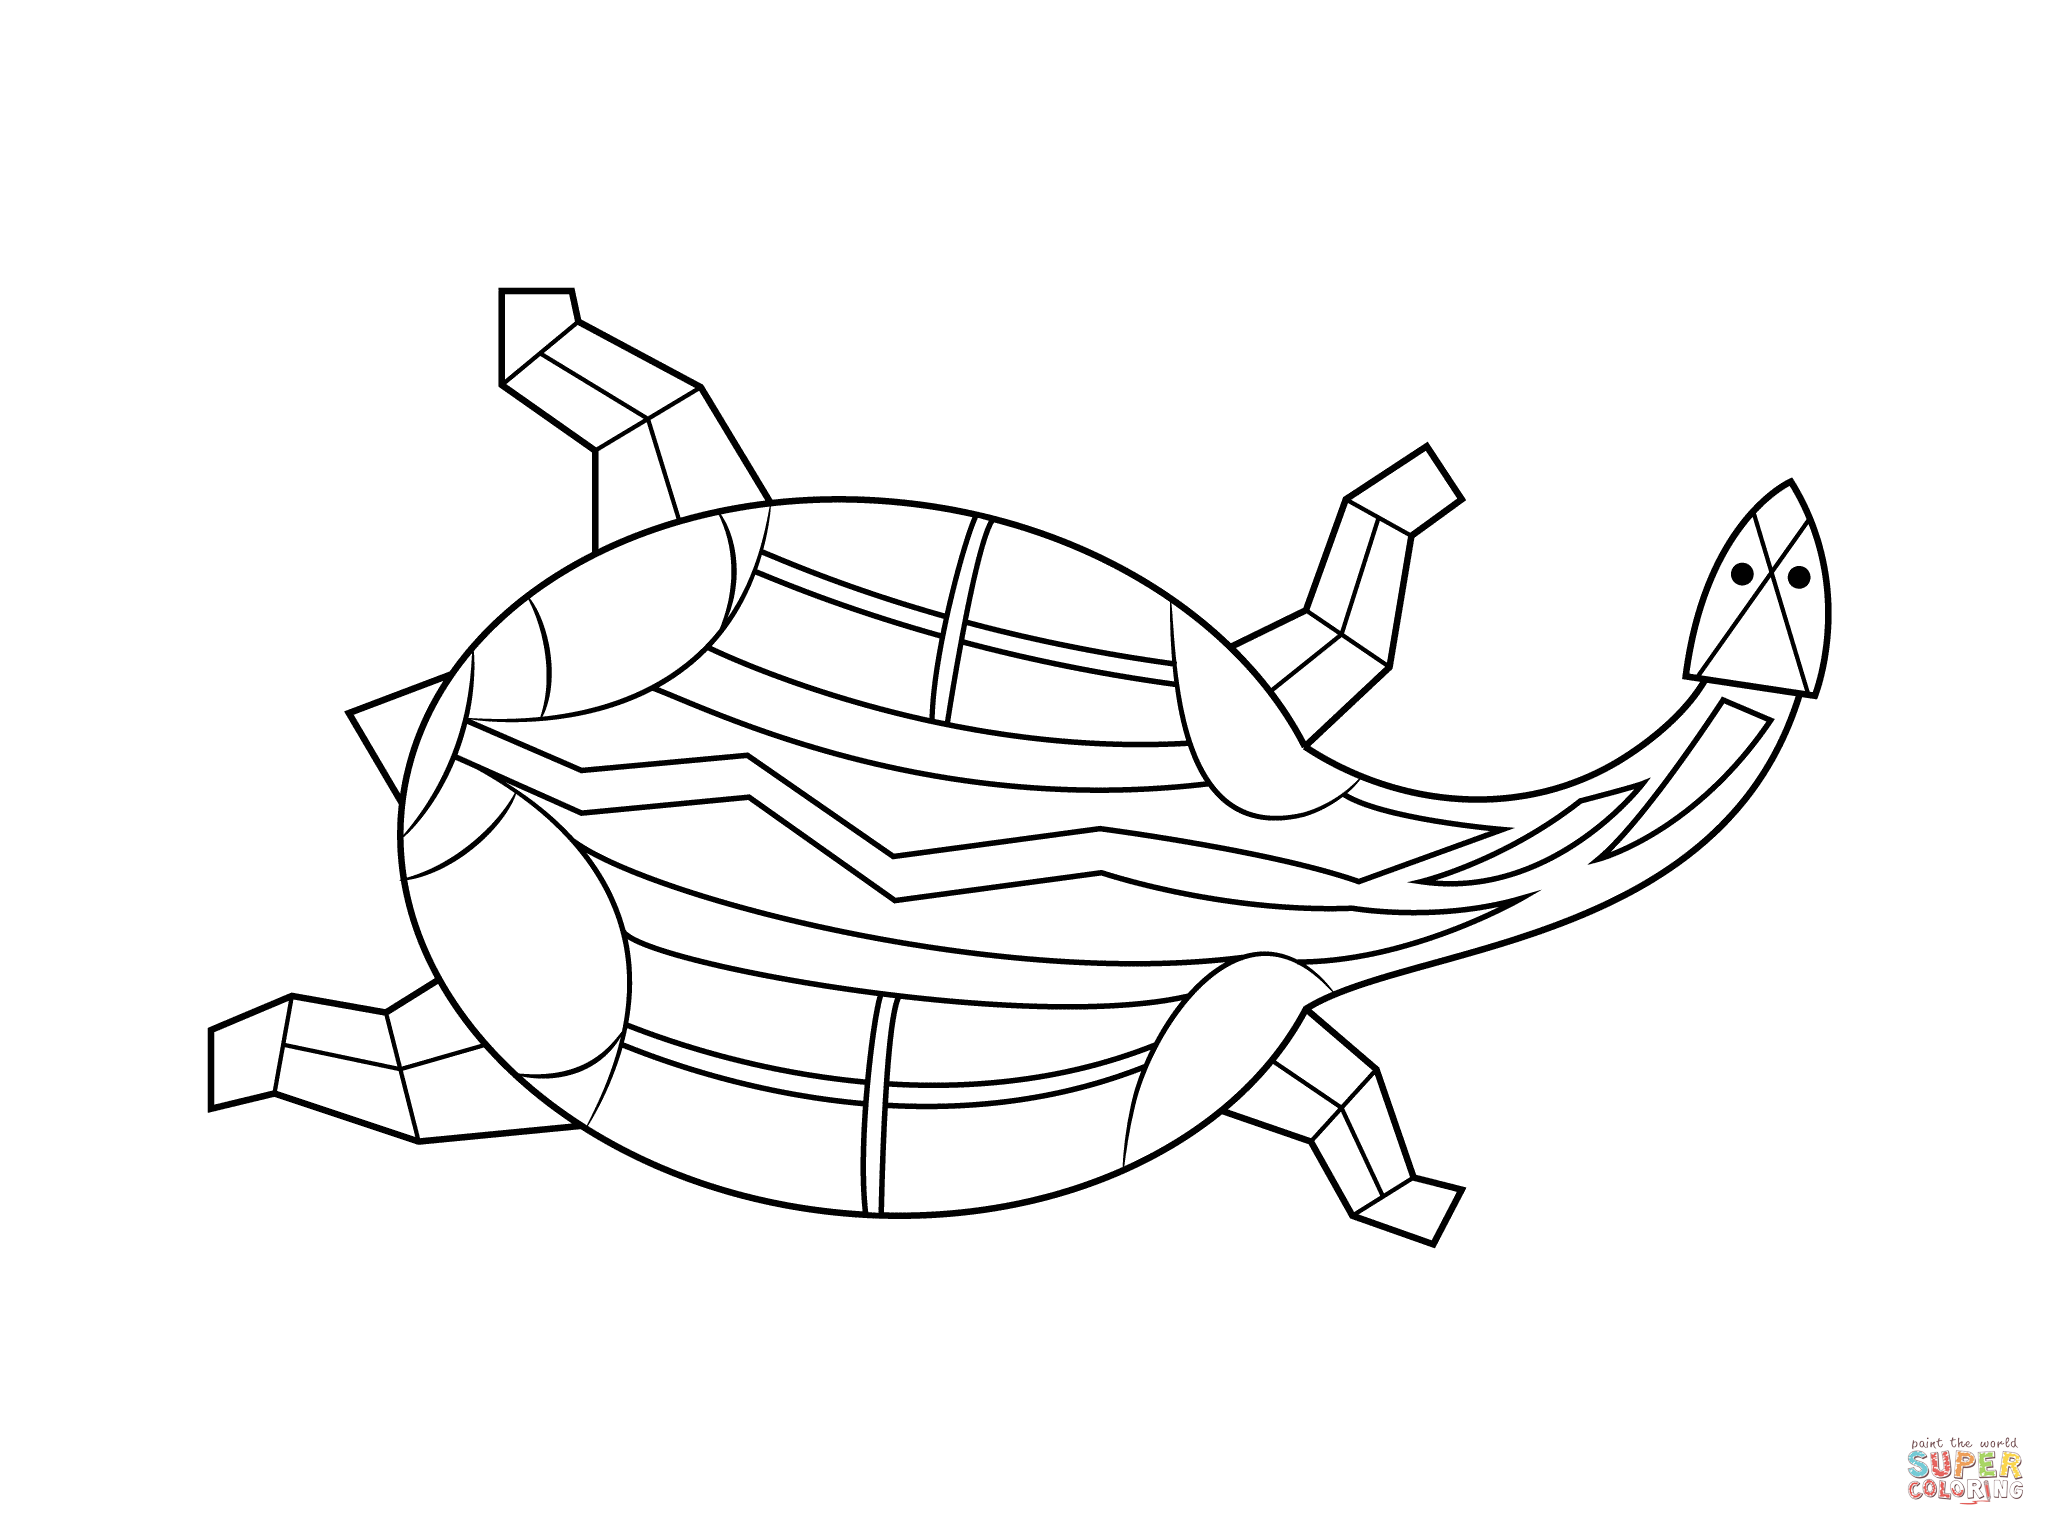 Sea Turtle Drawing Tumblr At Getdrawings Free For Personal Use